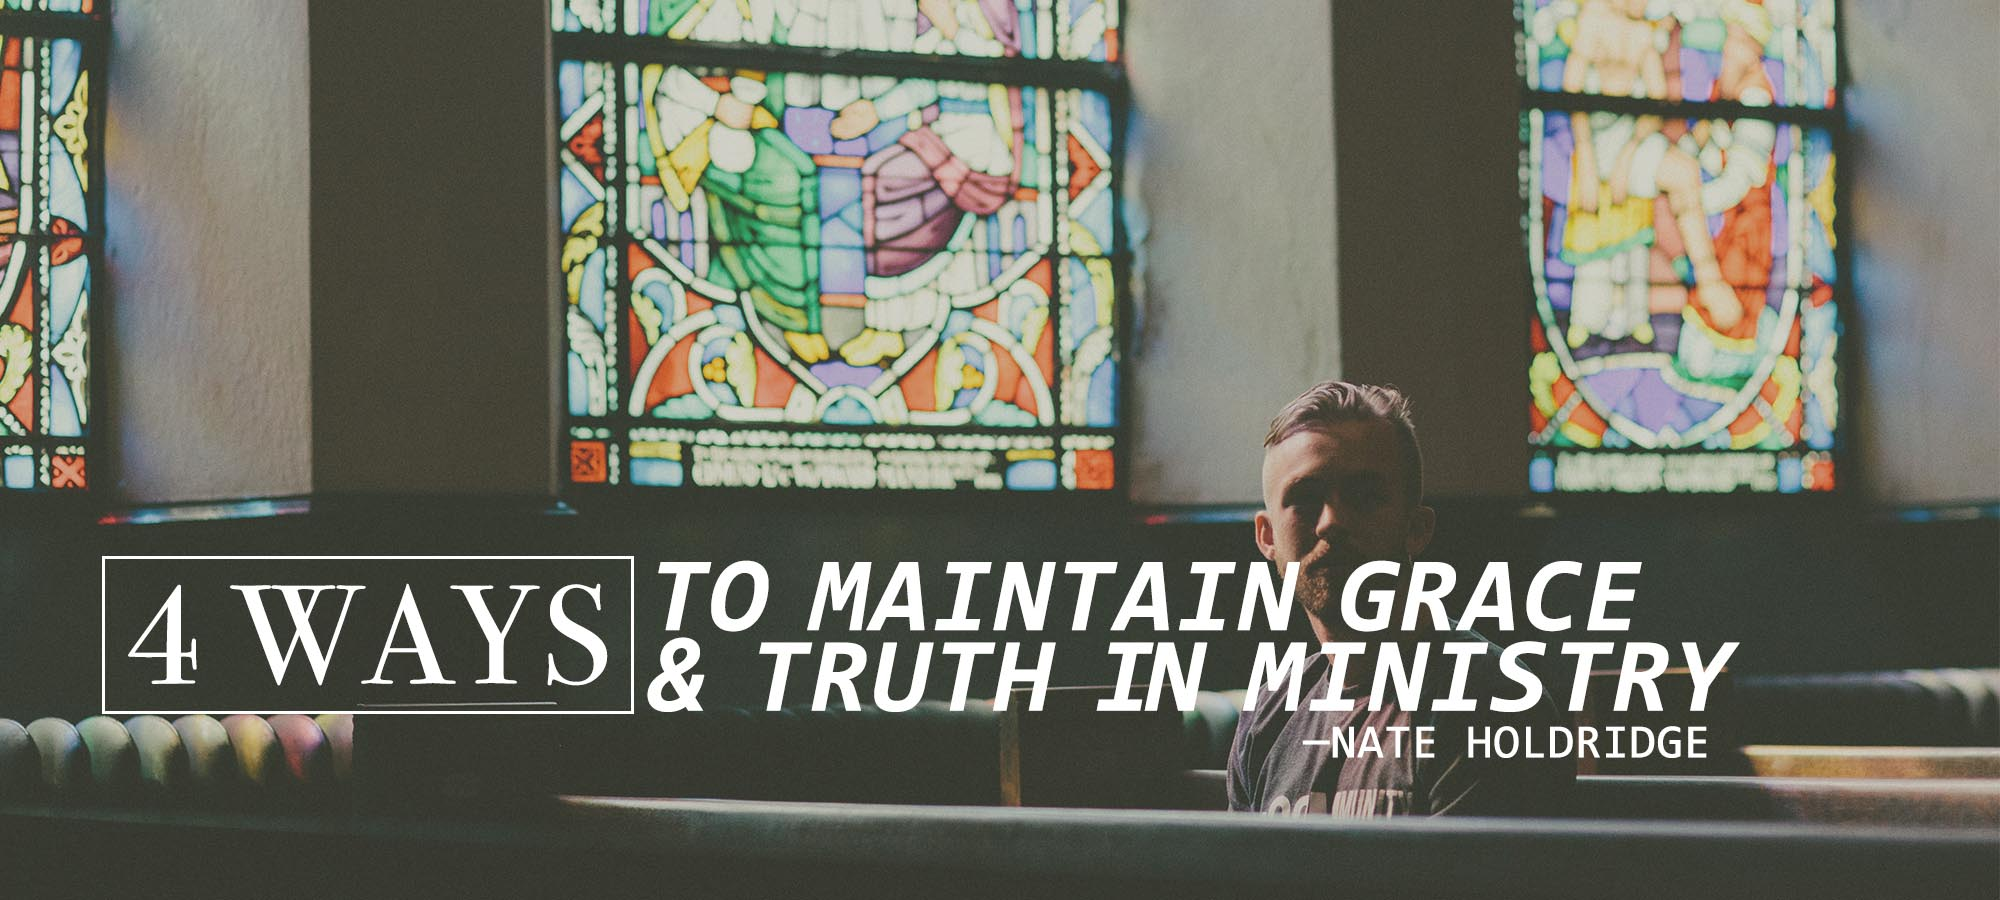 Four Ways to Maintain Grace and Truth in Ministry